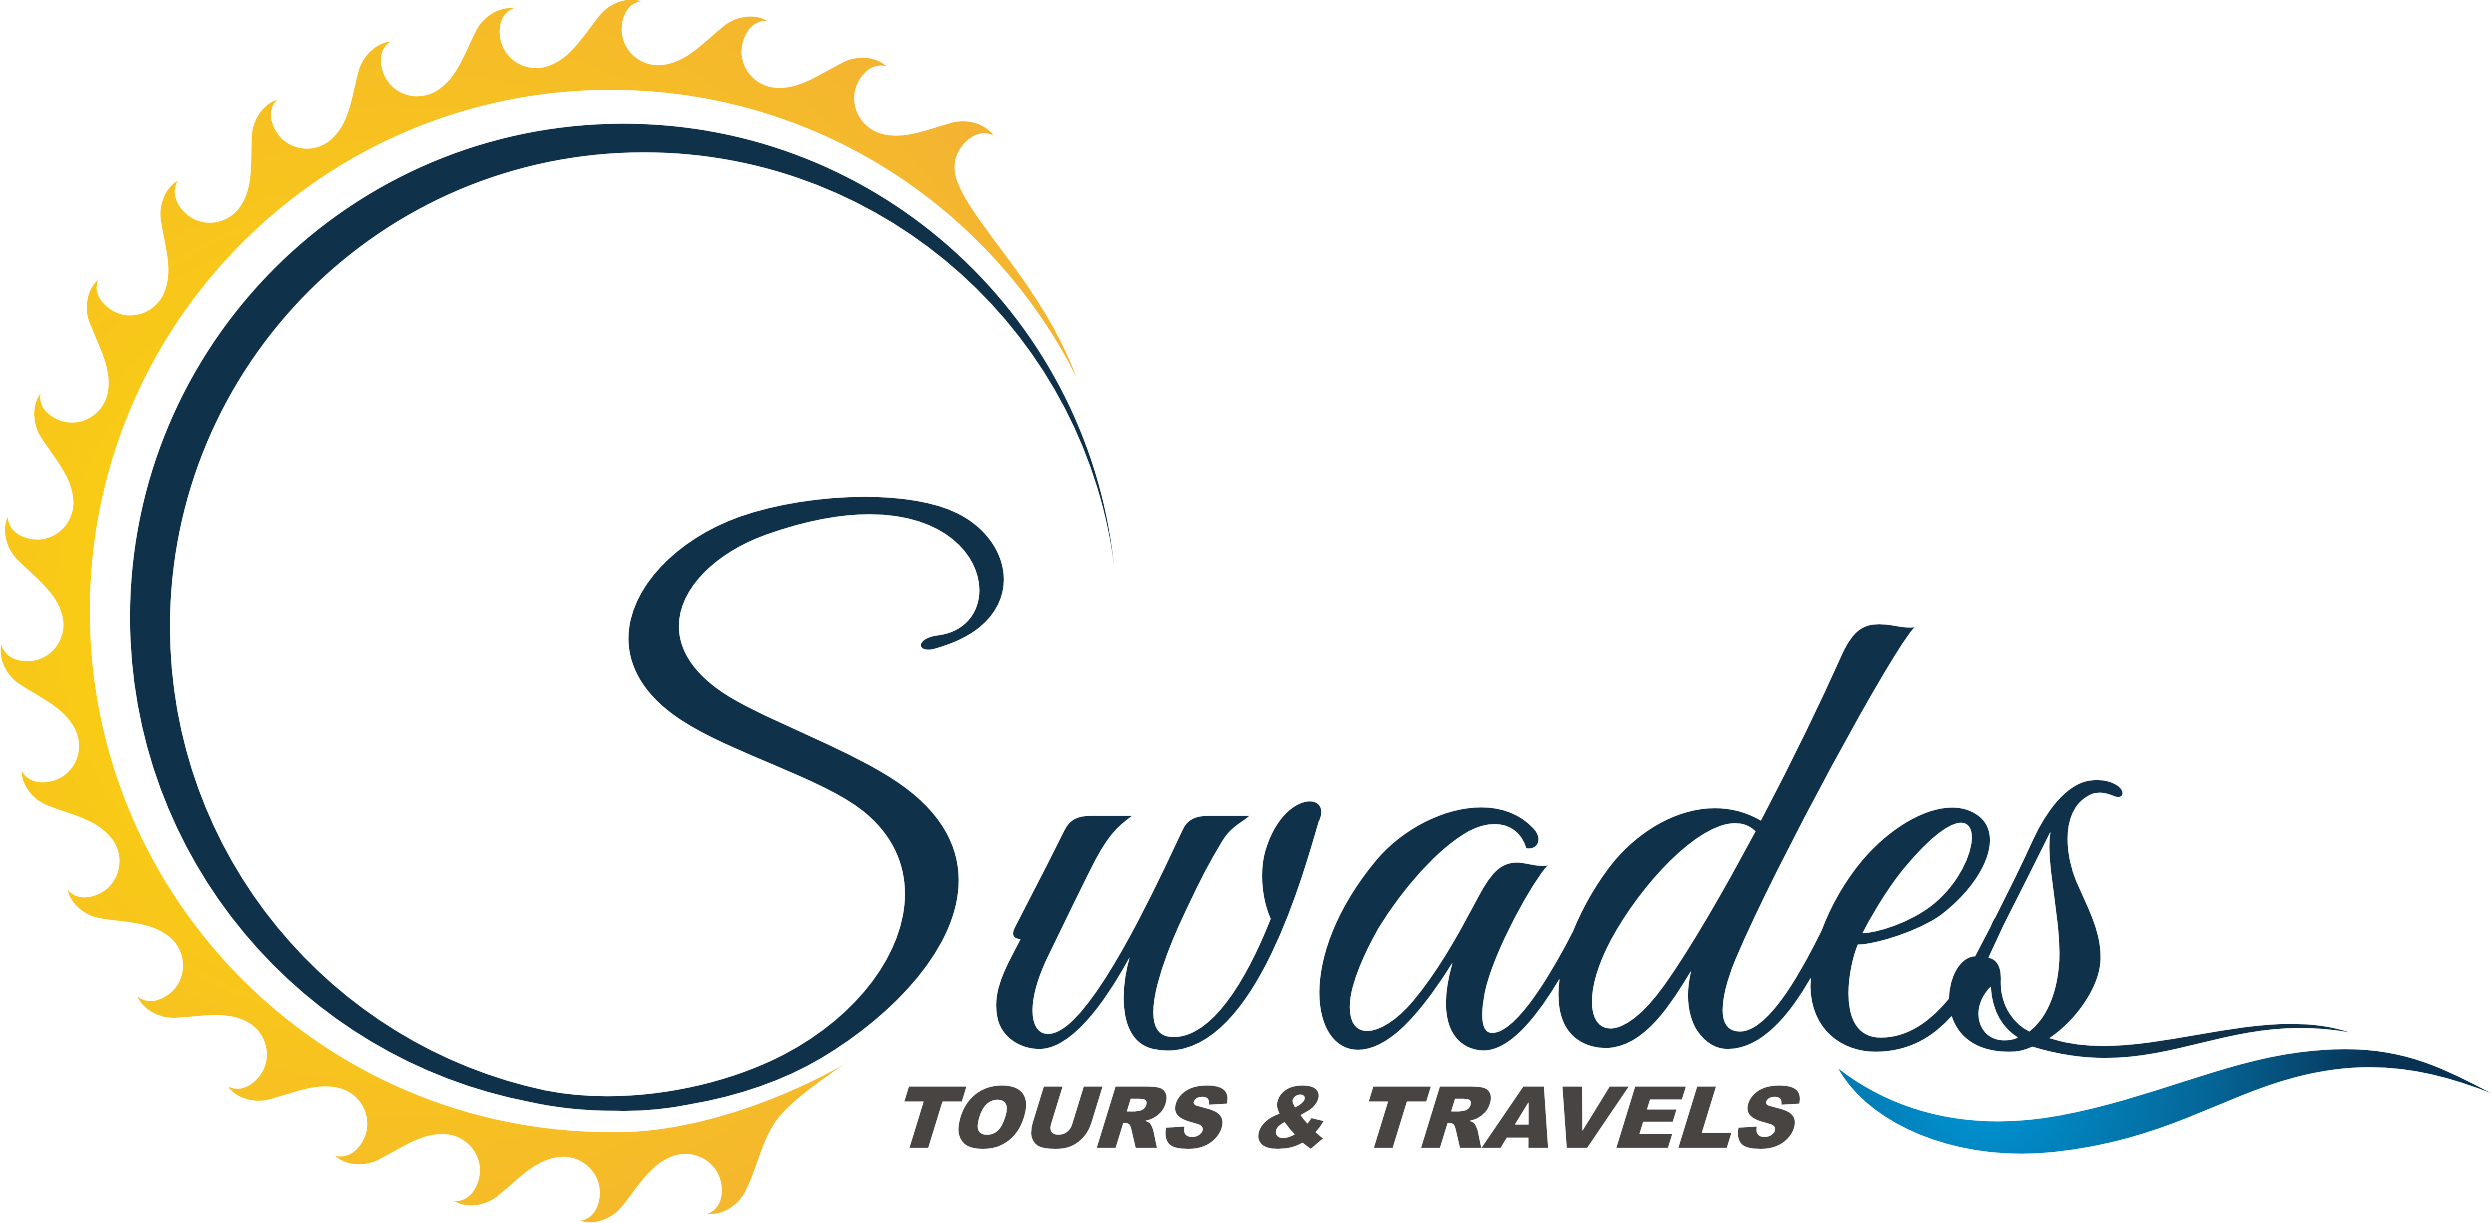 Traveling clipart travel logo. Swades travels agency in